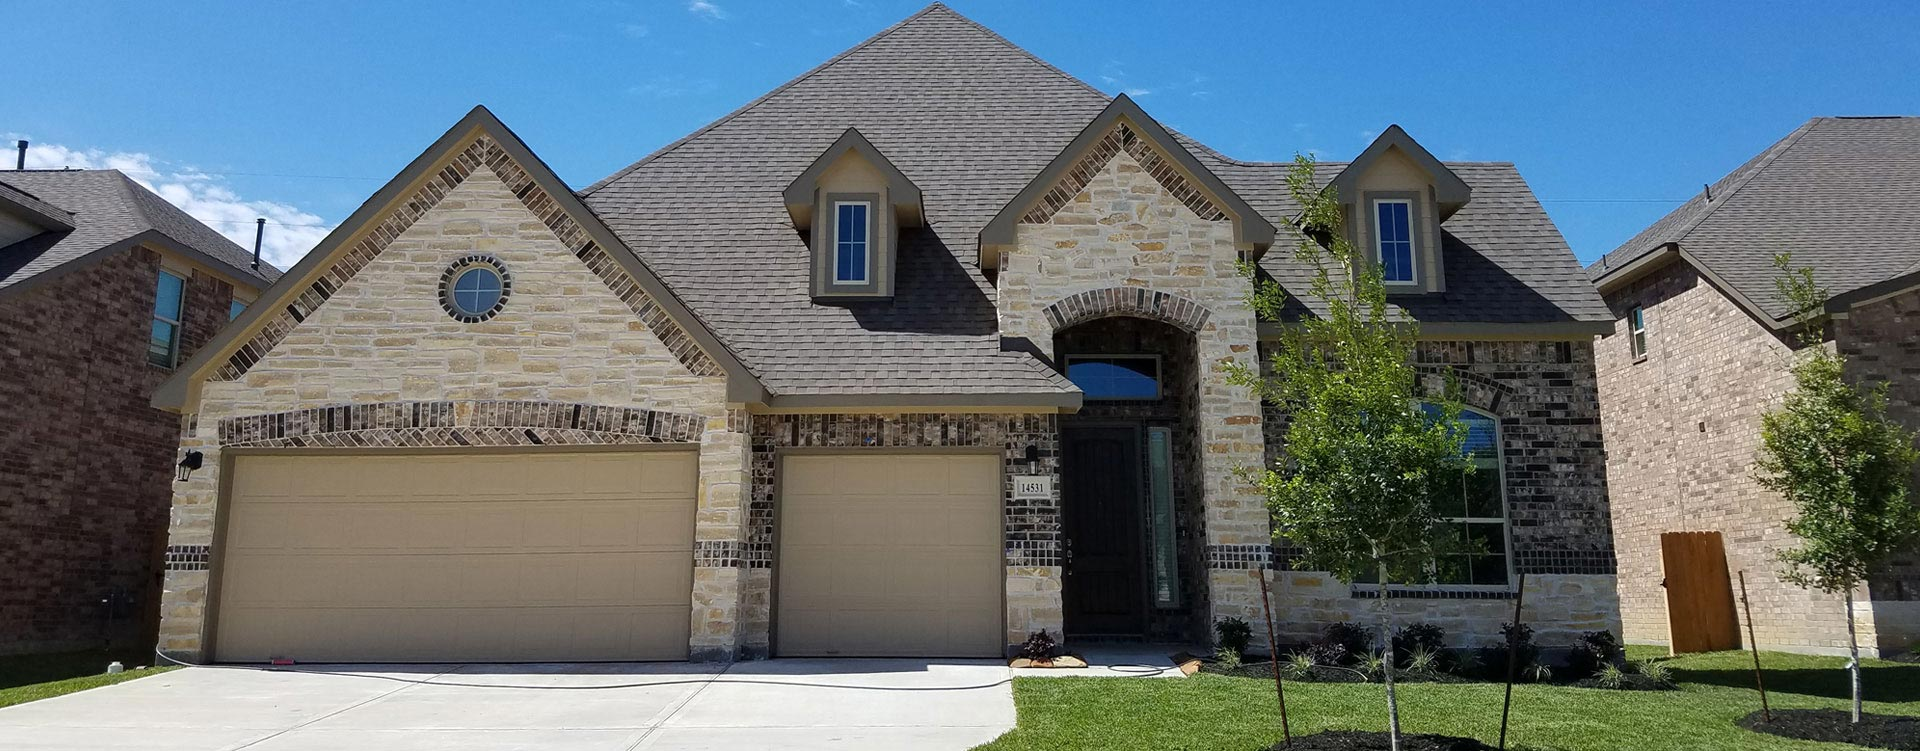 Fall Creek development of homes for sale in Humble Texas